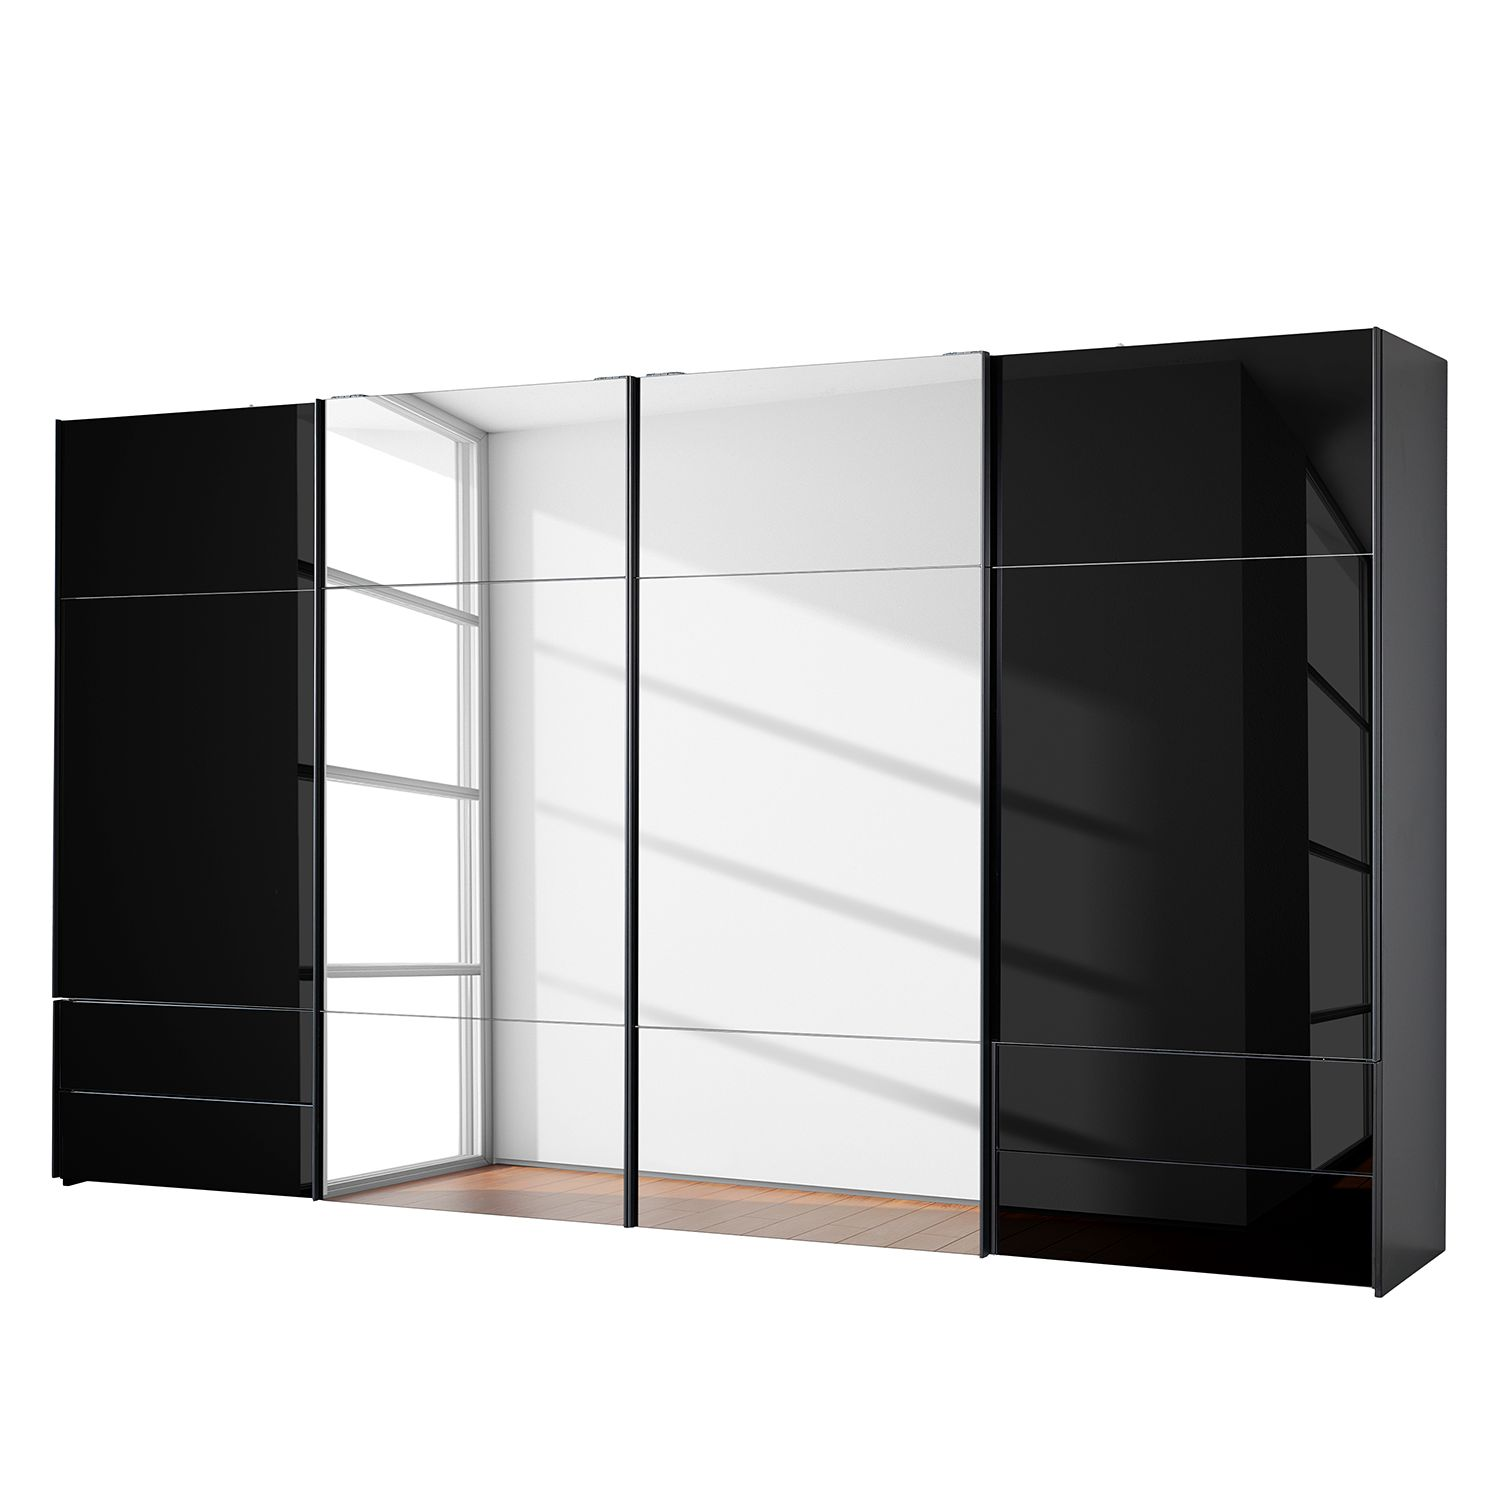 scrapeo 4 portes avec charni re d 39 armoire ikea pax. Black Bedroom Furniture Sets. Home Design Ideas